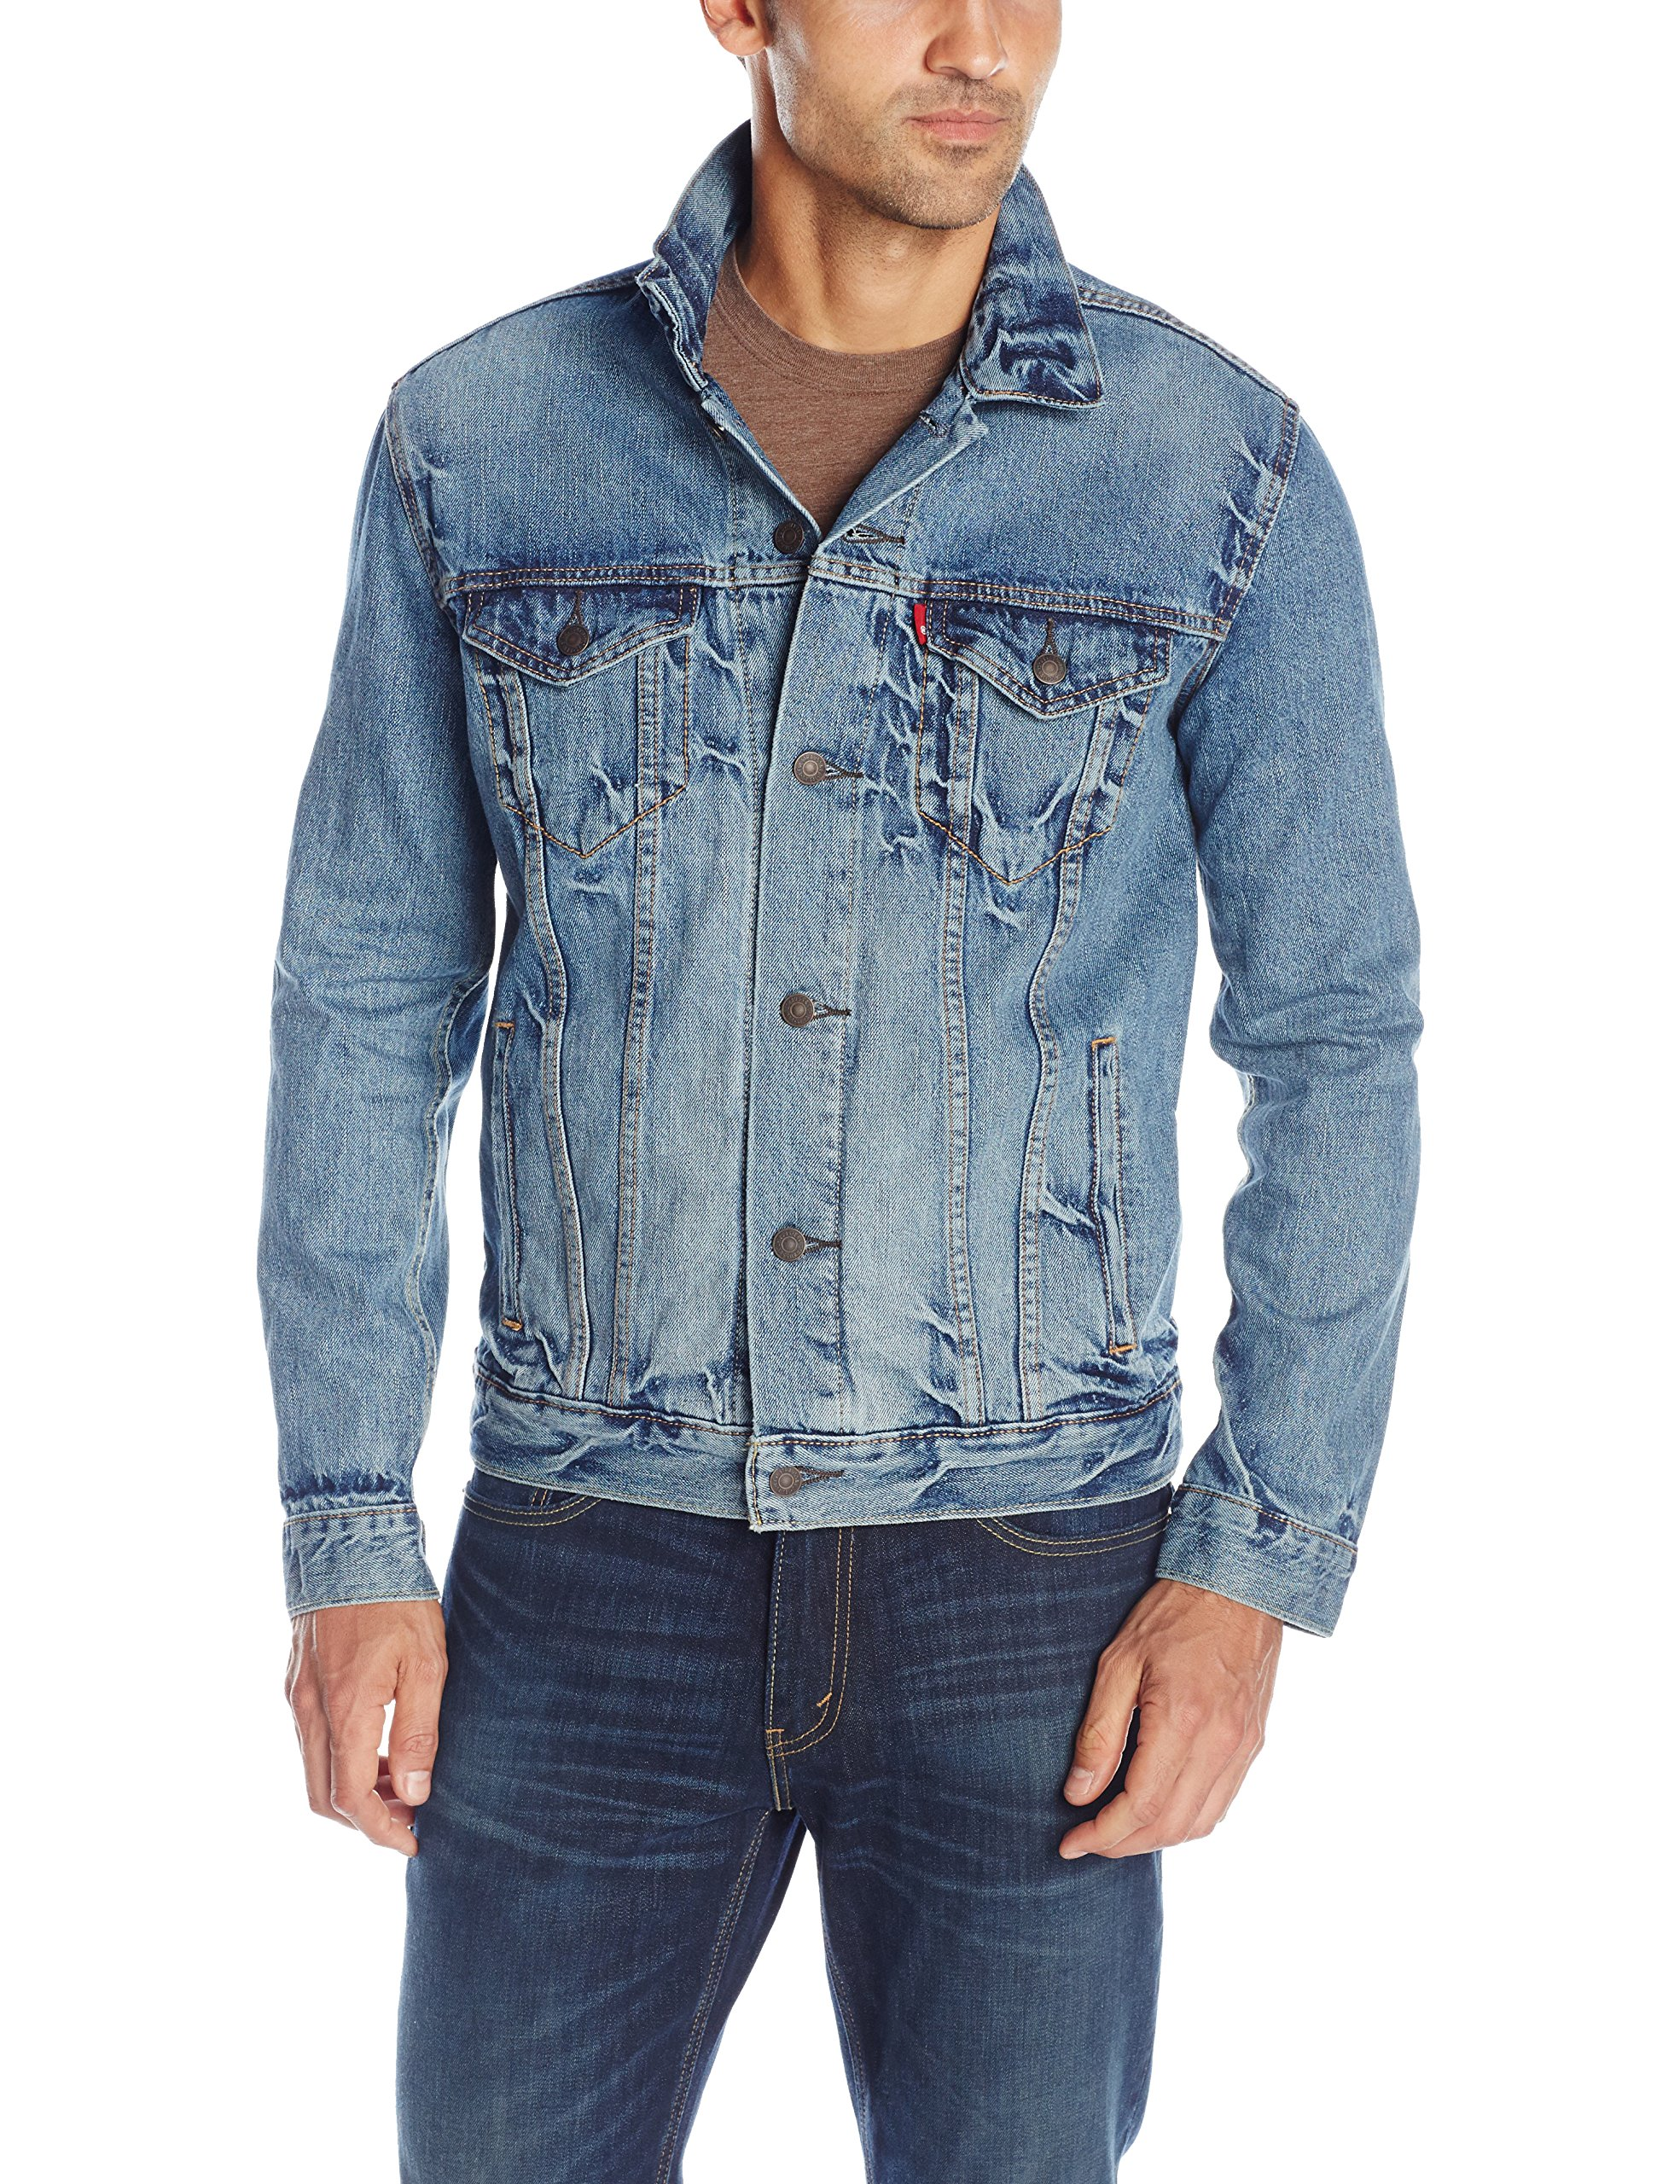 Levi's Men's The Trucker Jacket, Spire, Medium by Levi's